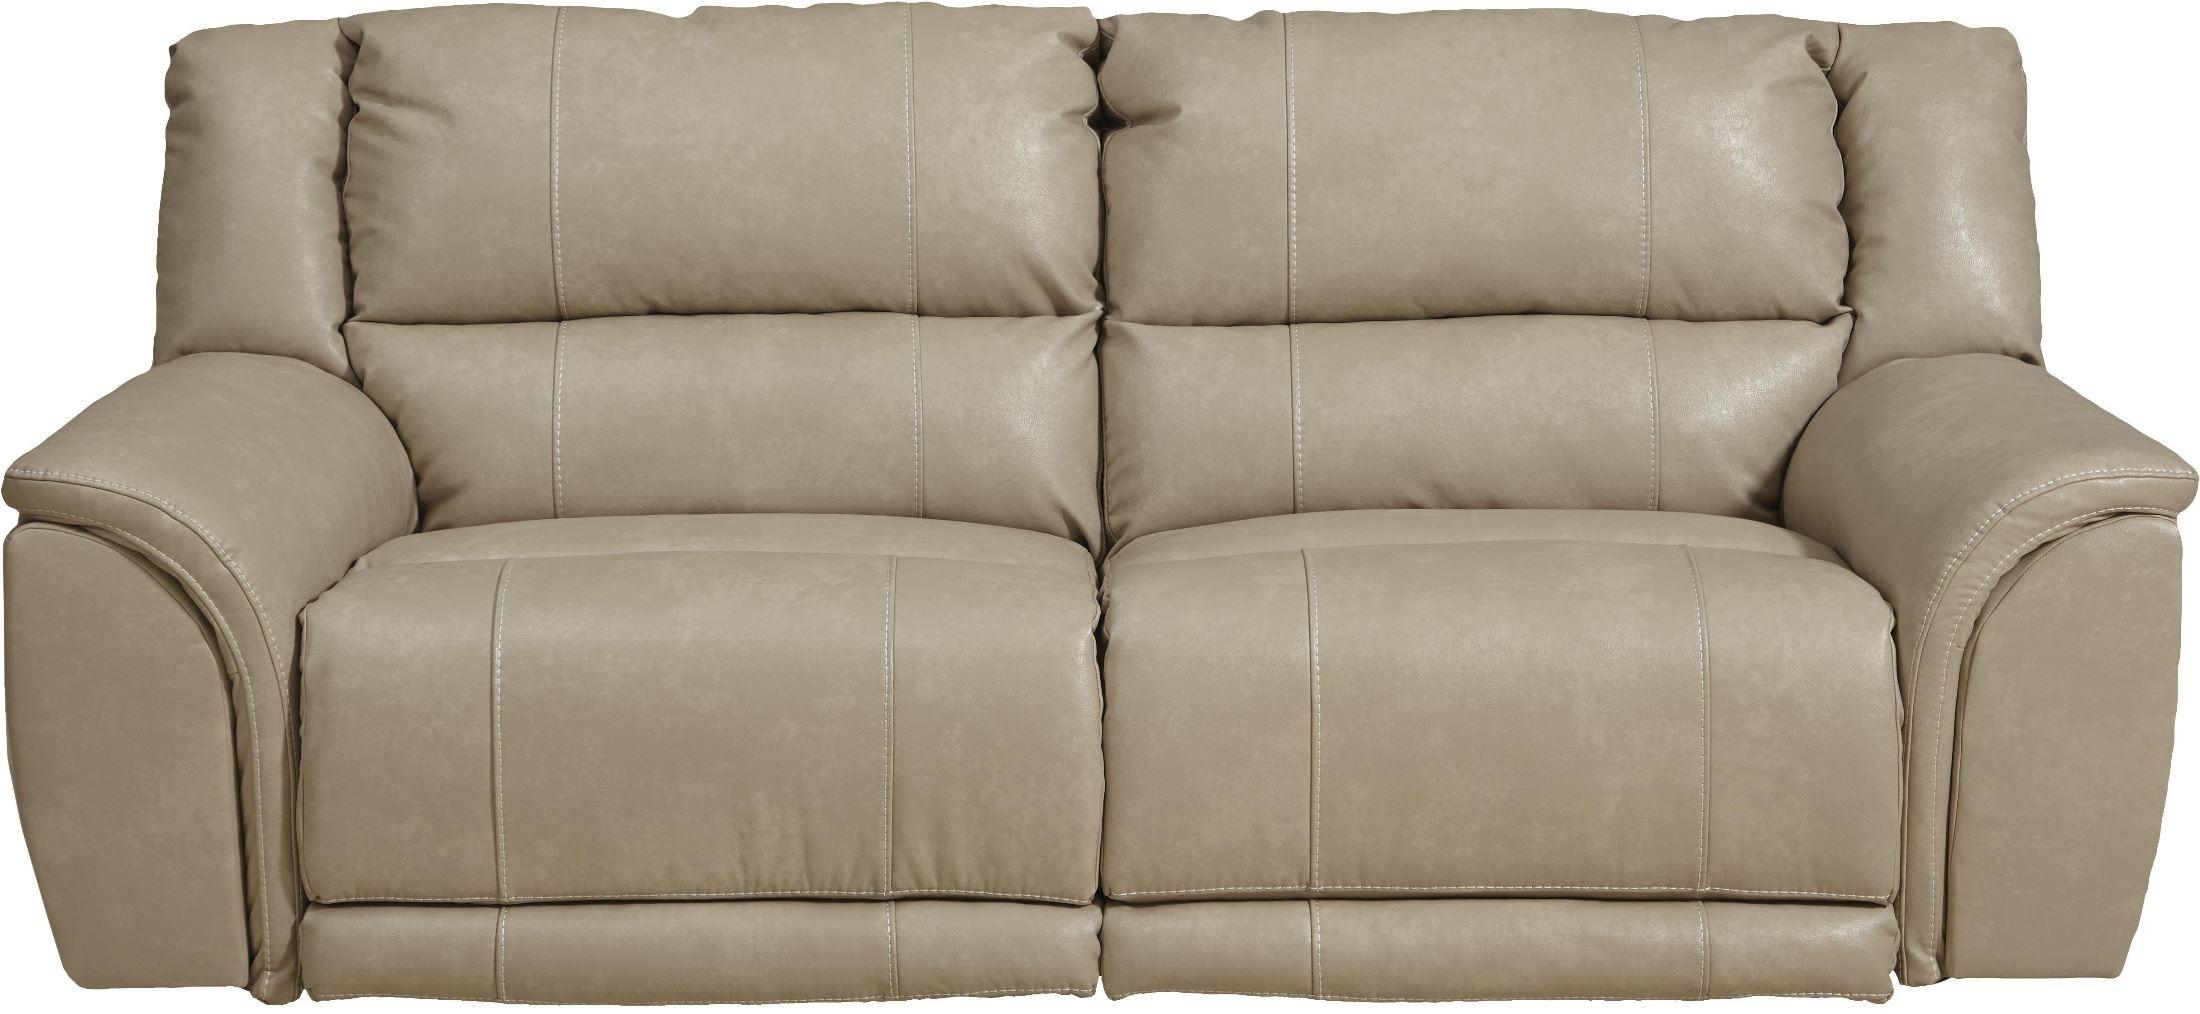 Carmine Pebble Power Reclining Living Room Set From Catnapper For Catnapper Reclining Sofas (View 7 of 20)